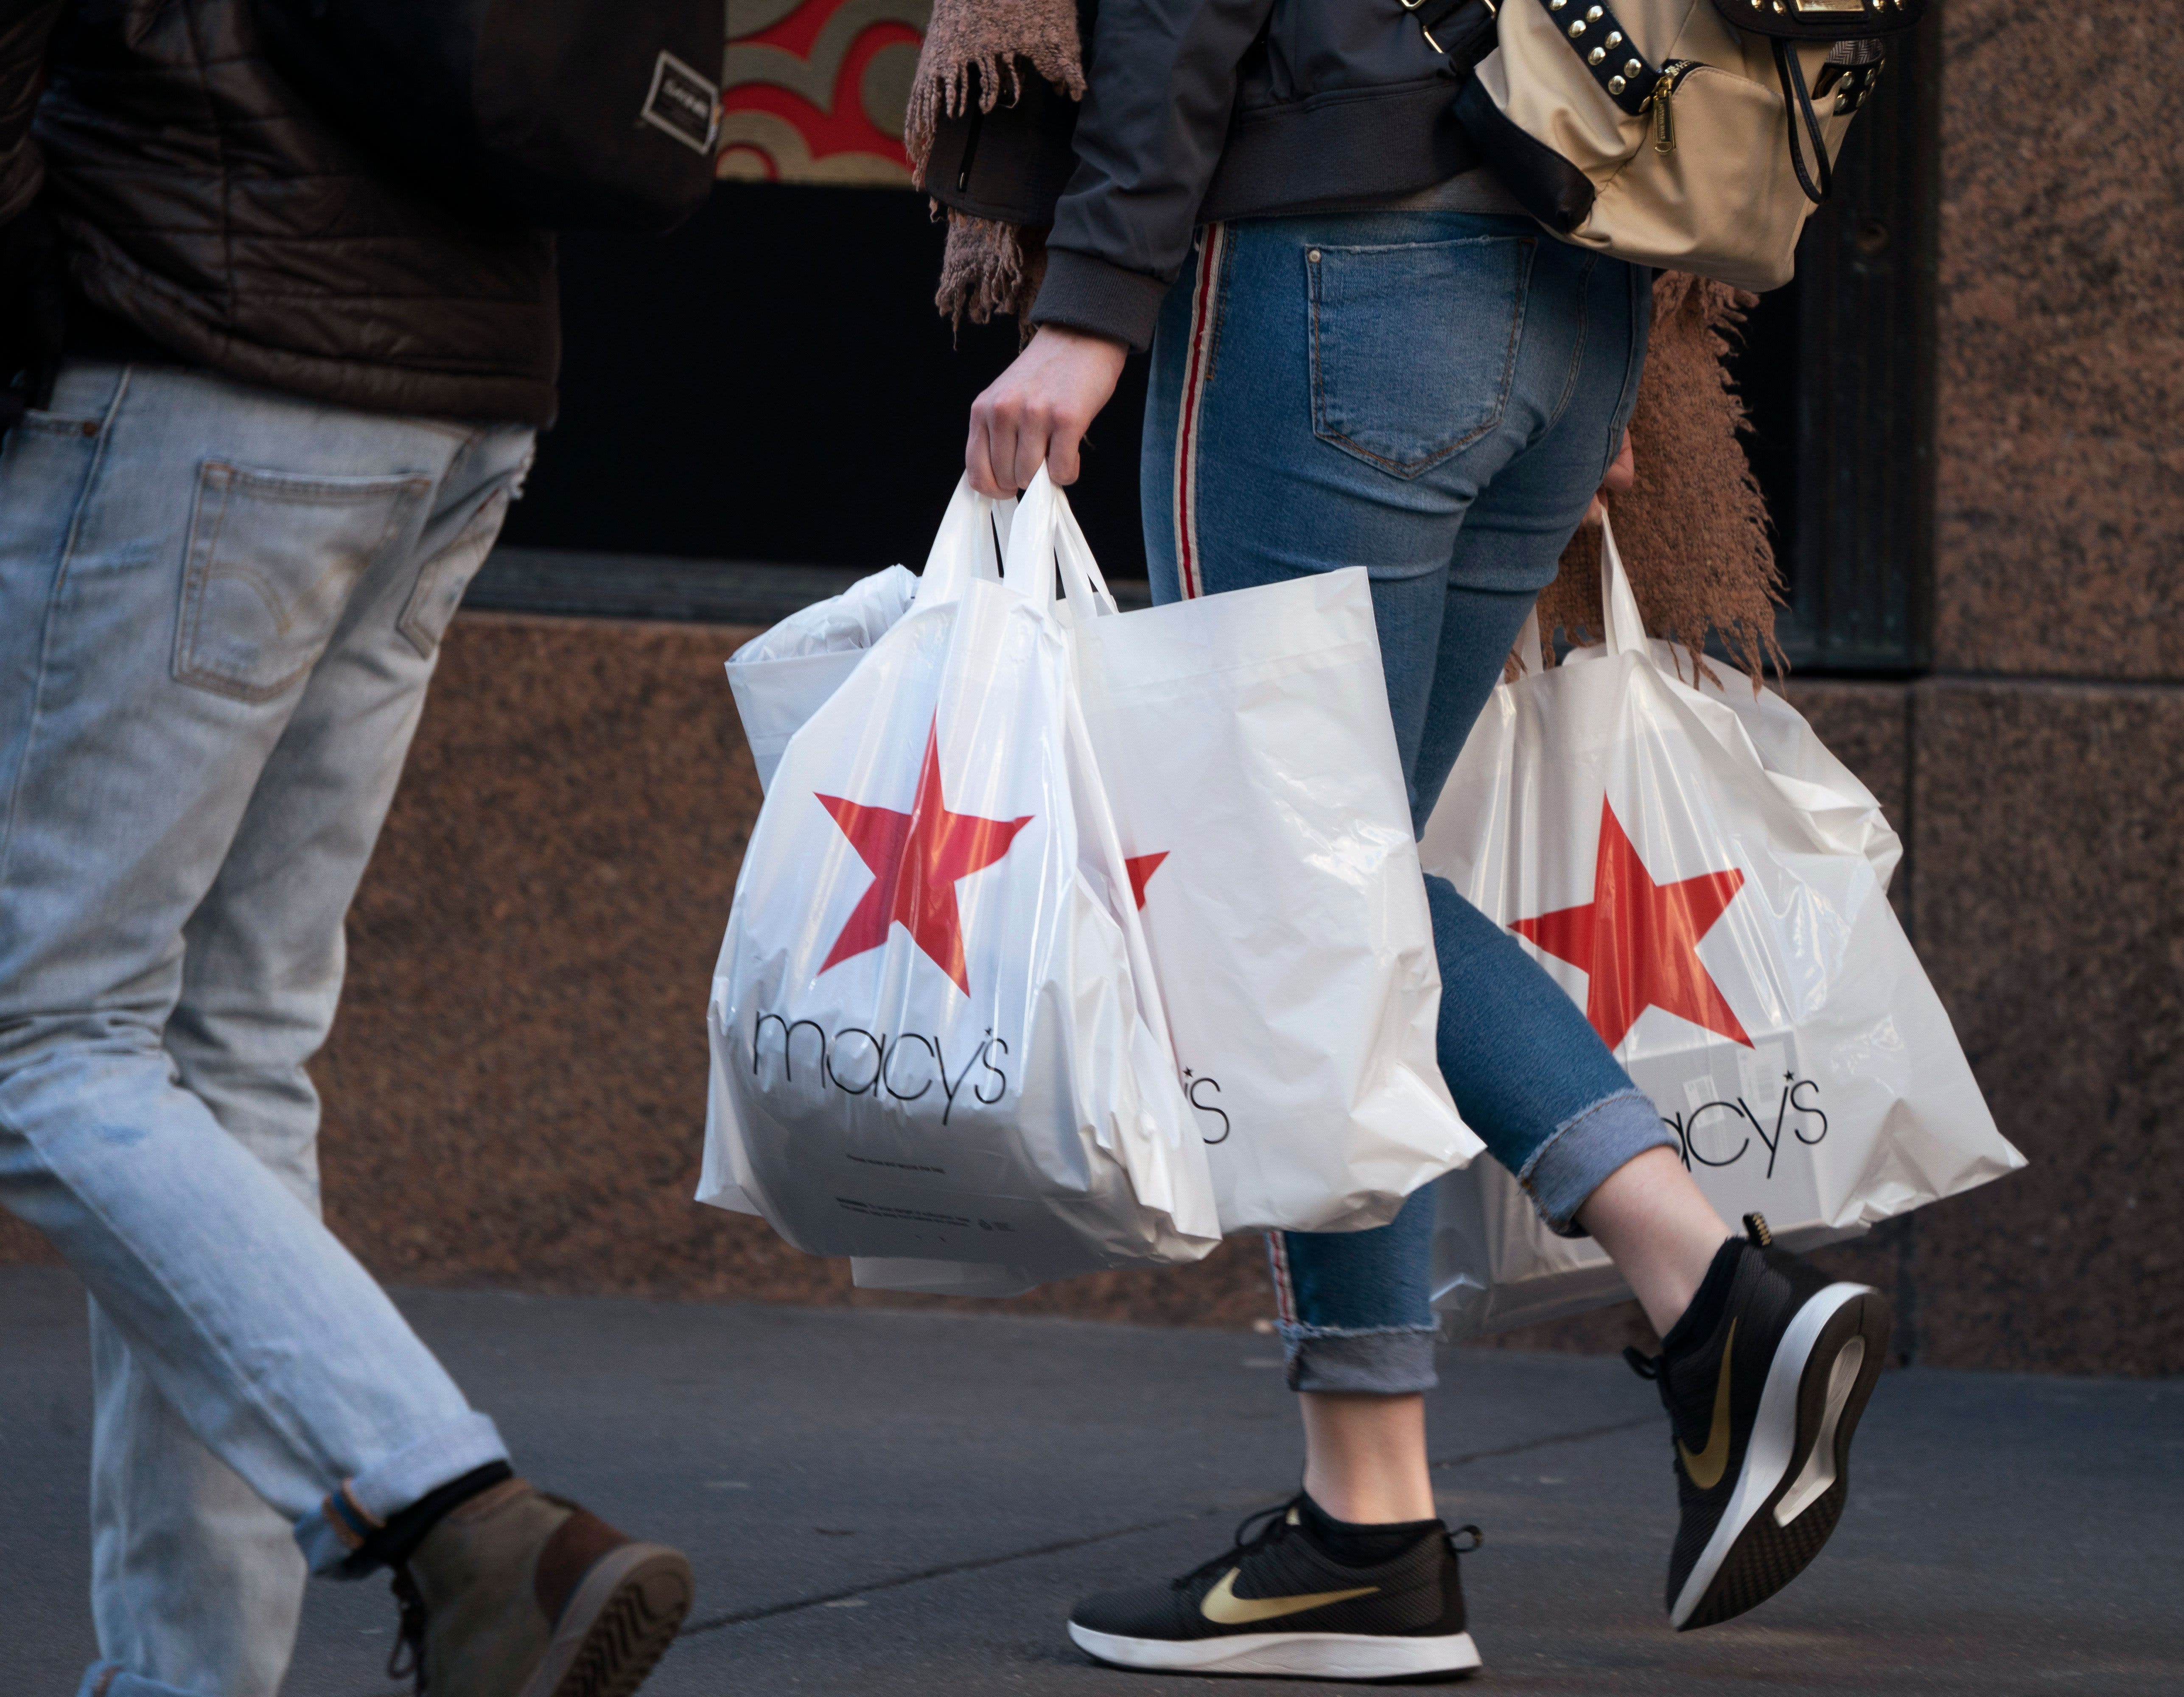 Department store stocks fall on the heels of Macy's dismal earnings